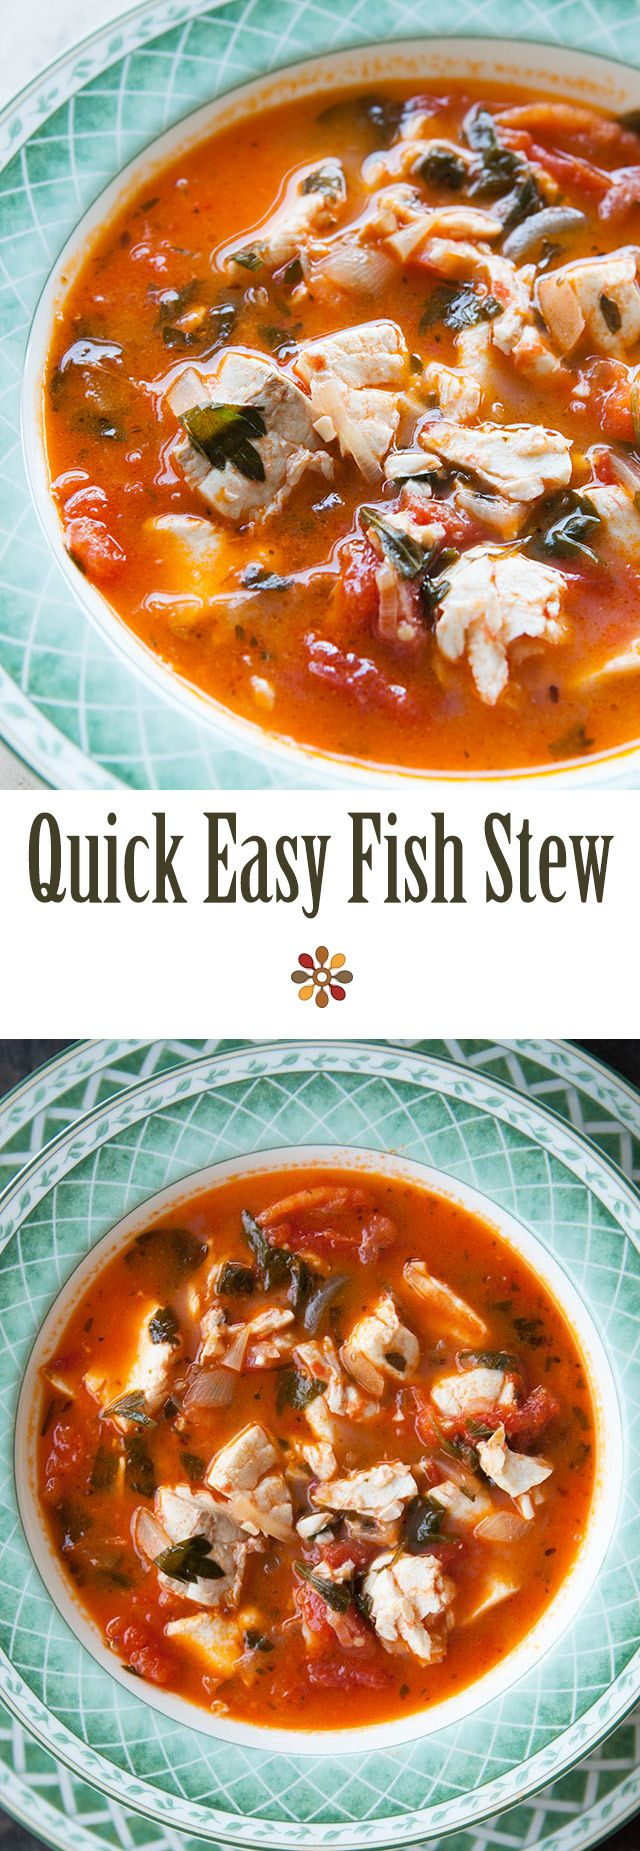 25 best ideas about fish stew on pinterest fish soup for Fish stew recipes